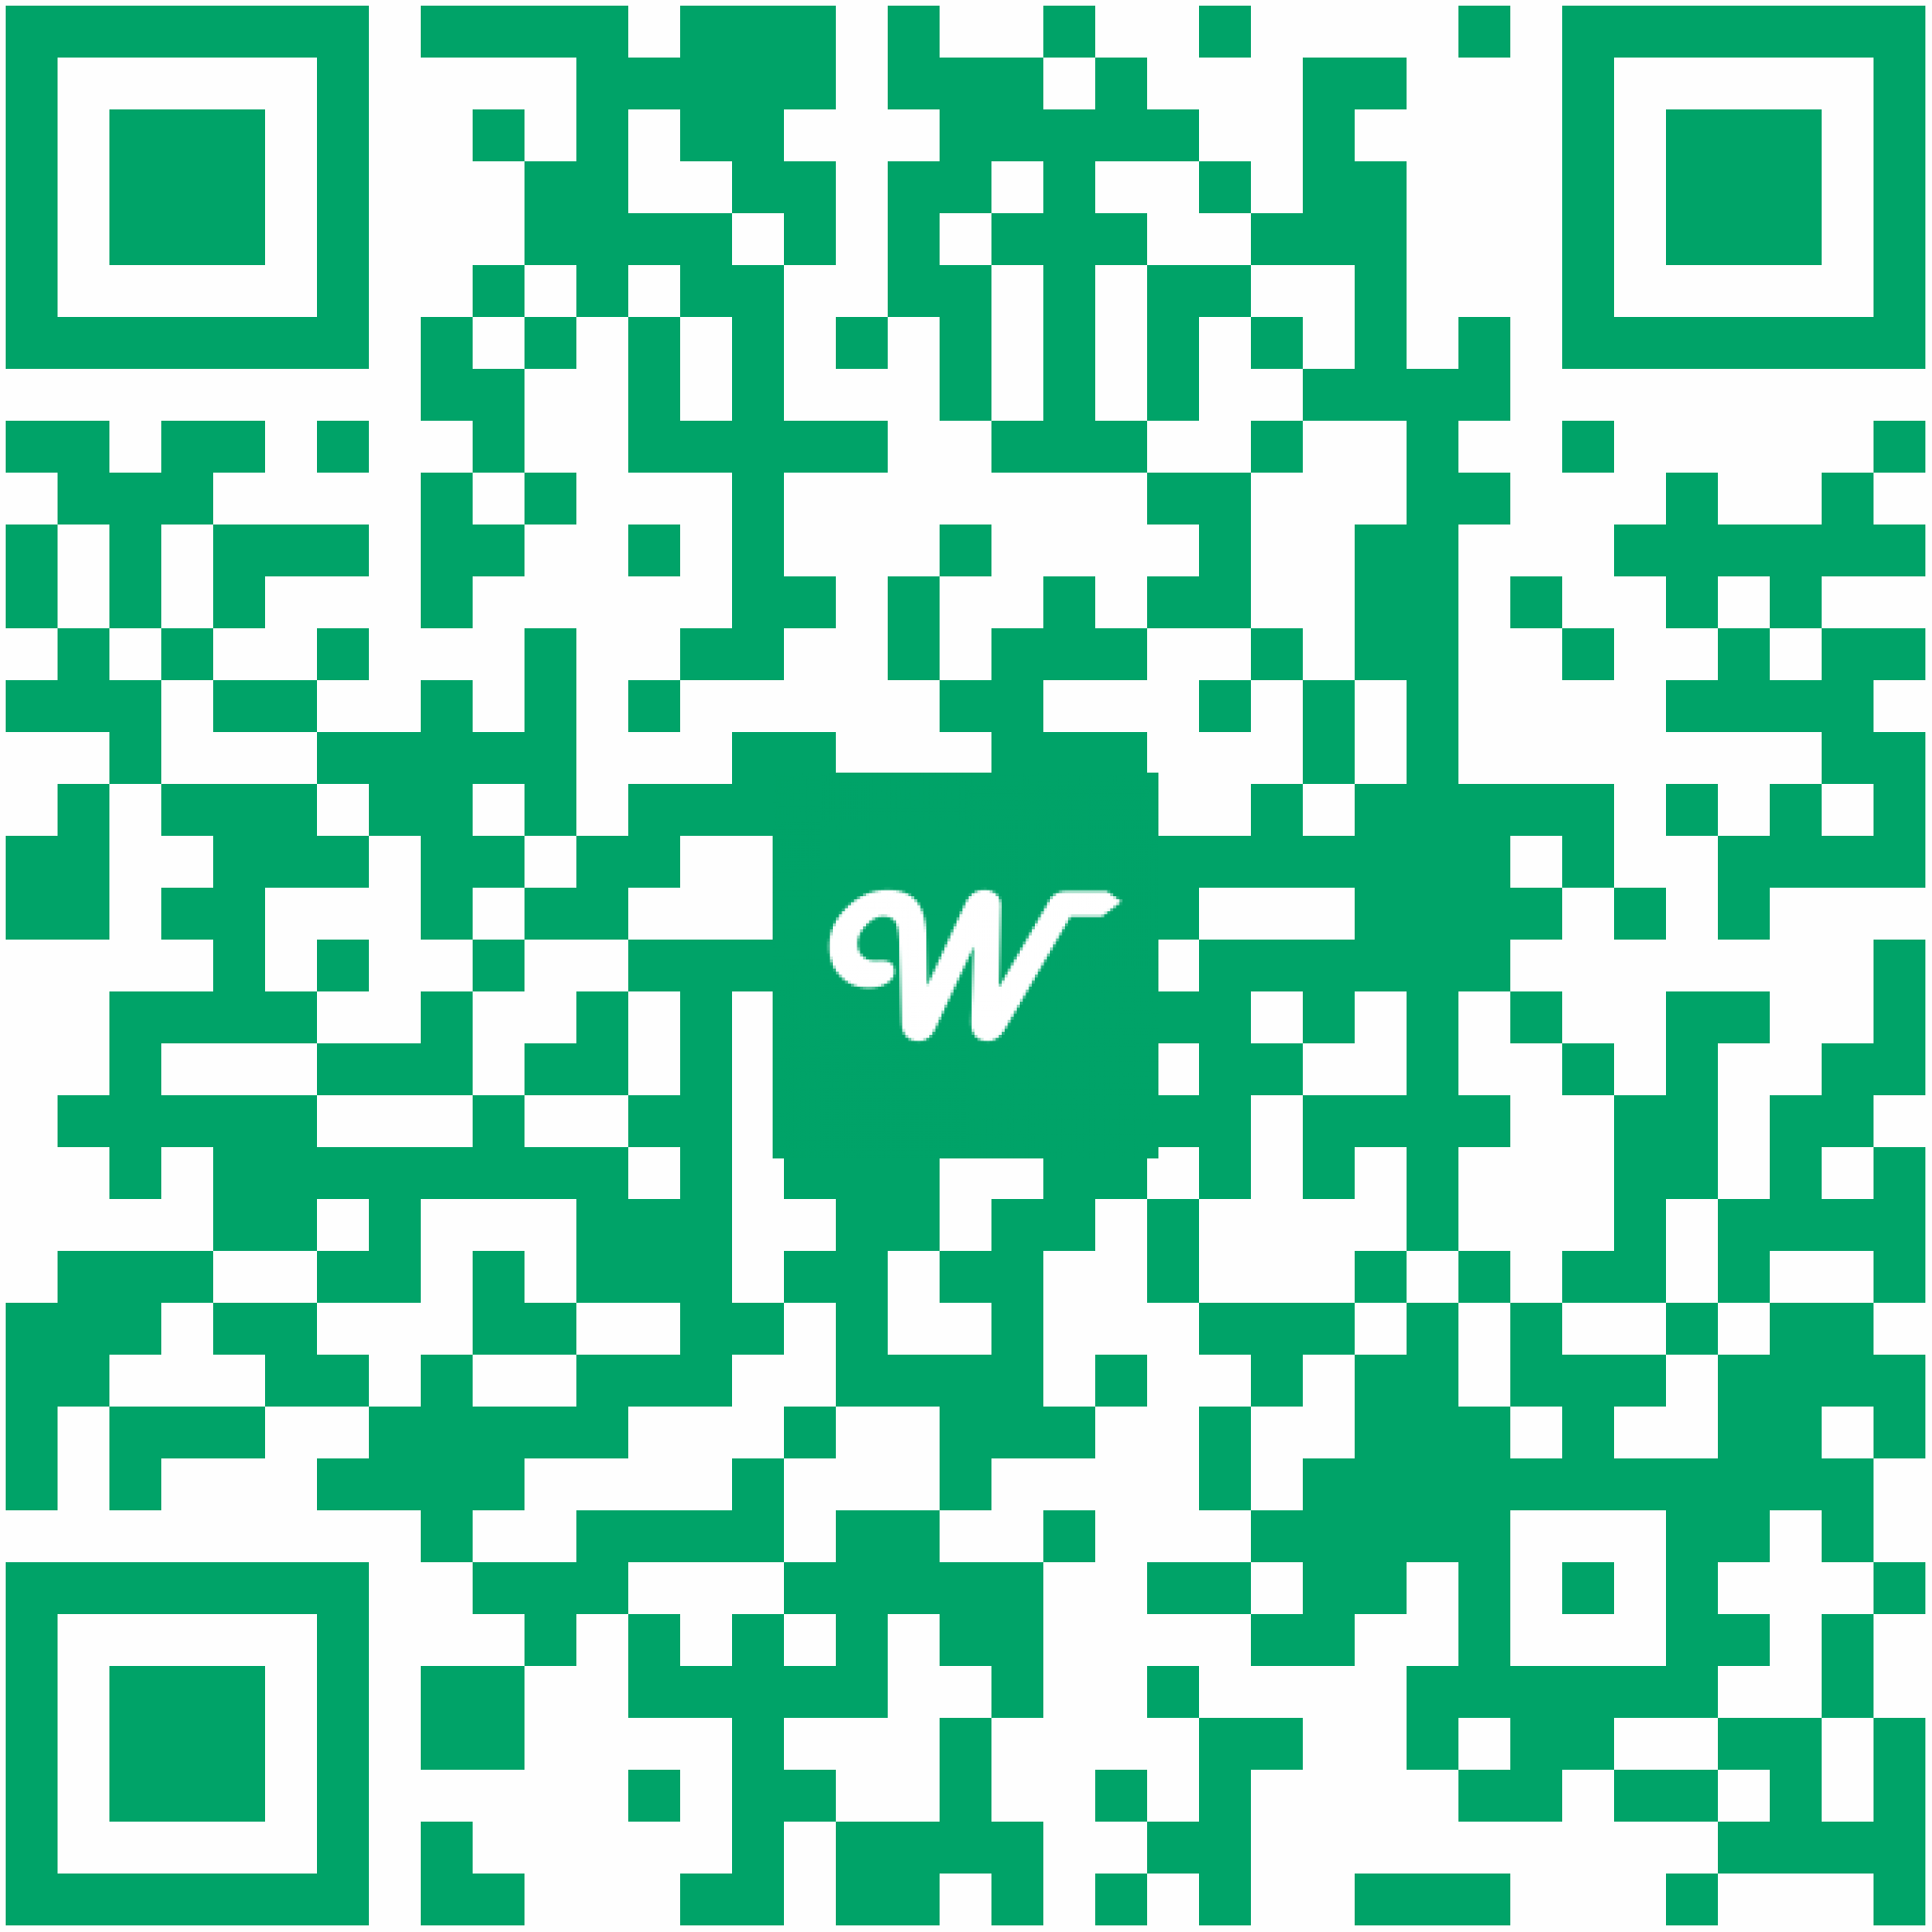 Printable QR code for ZABEEH SERVICES SDN BHD